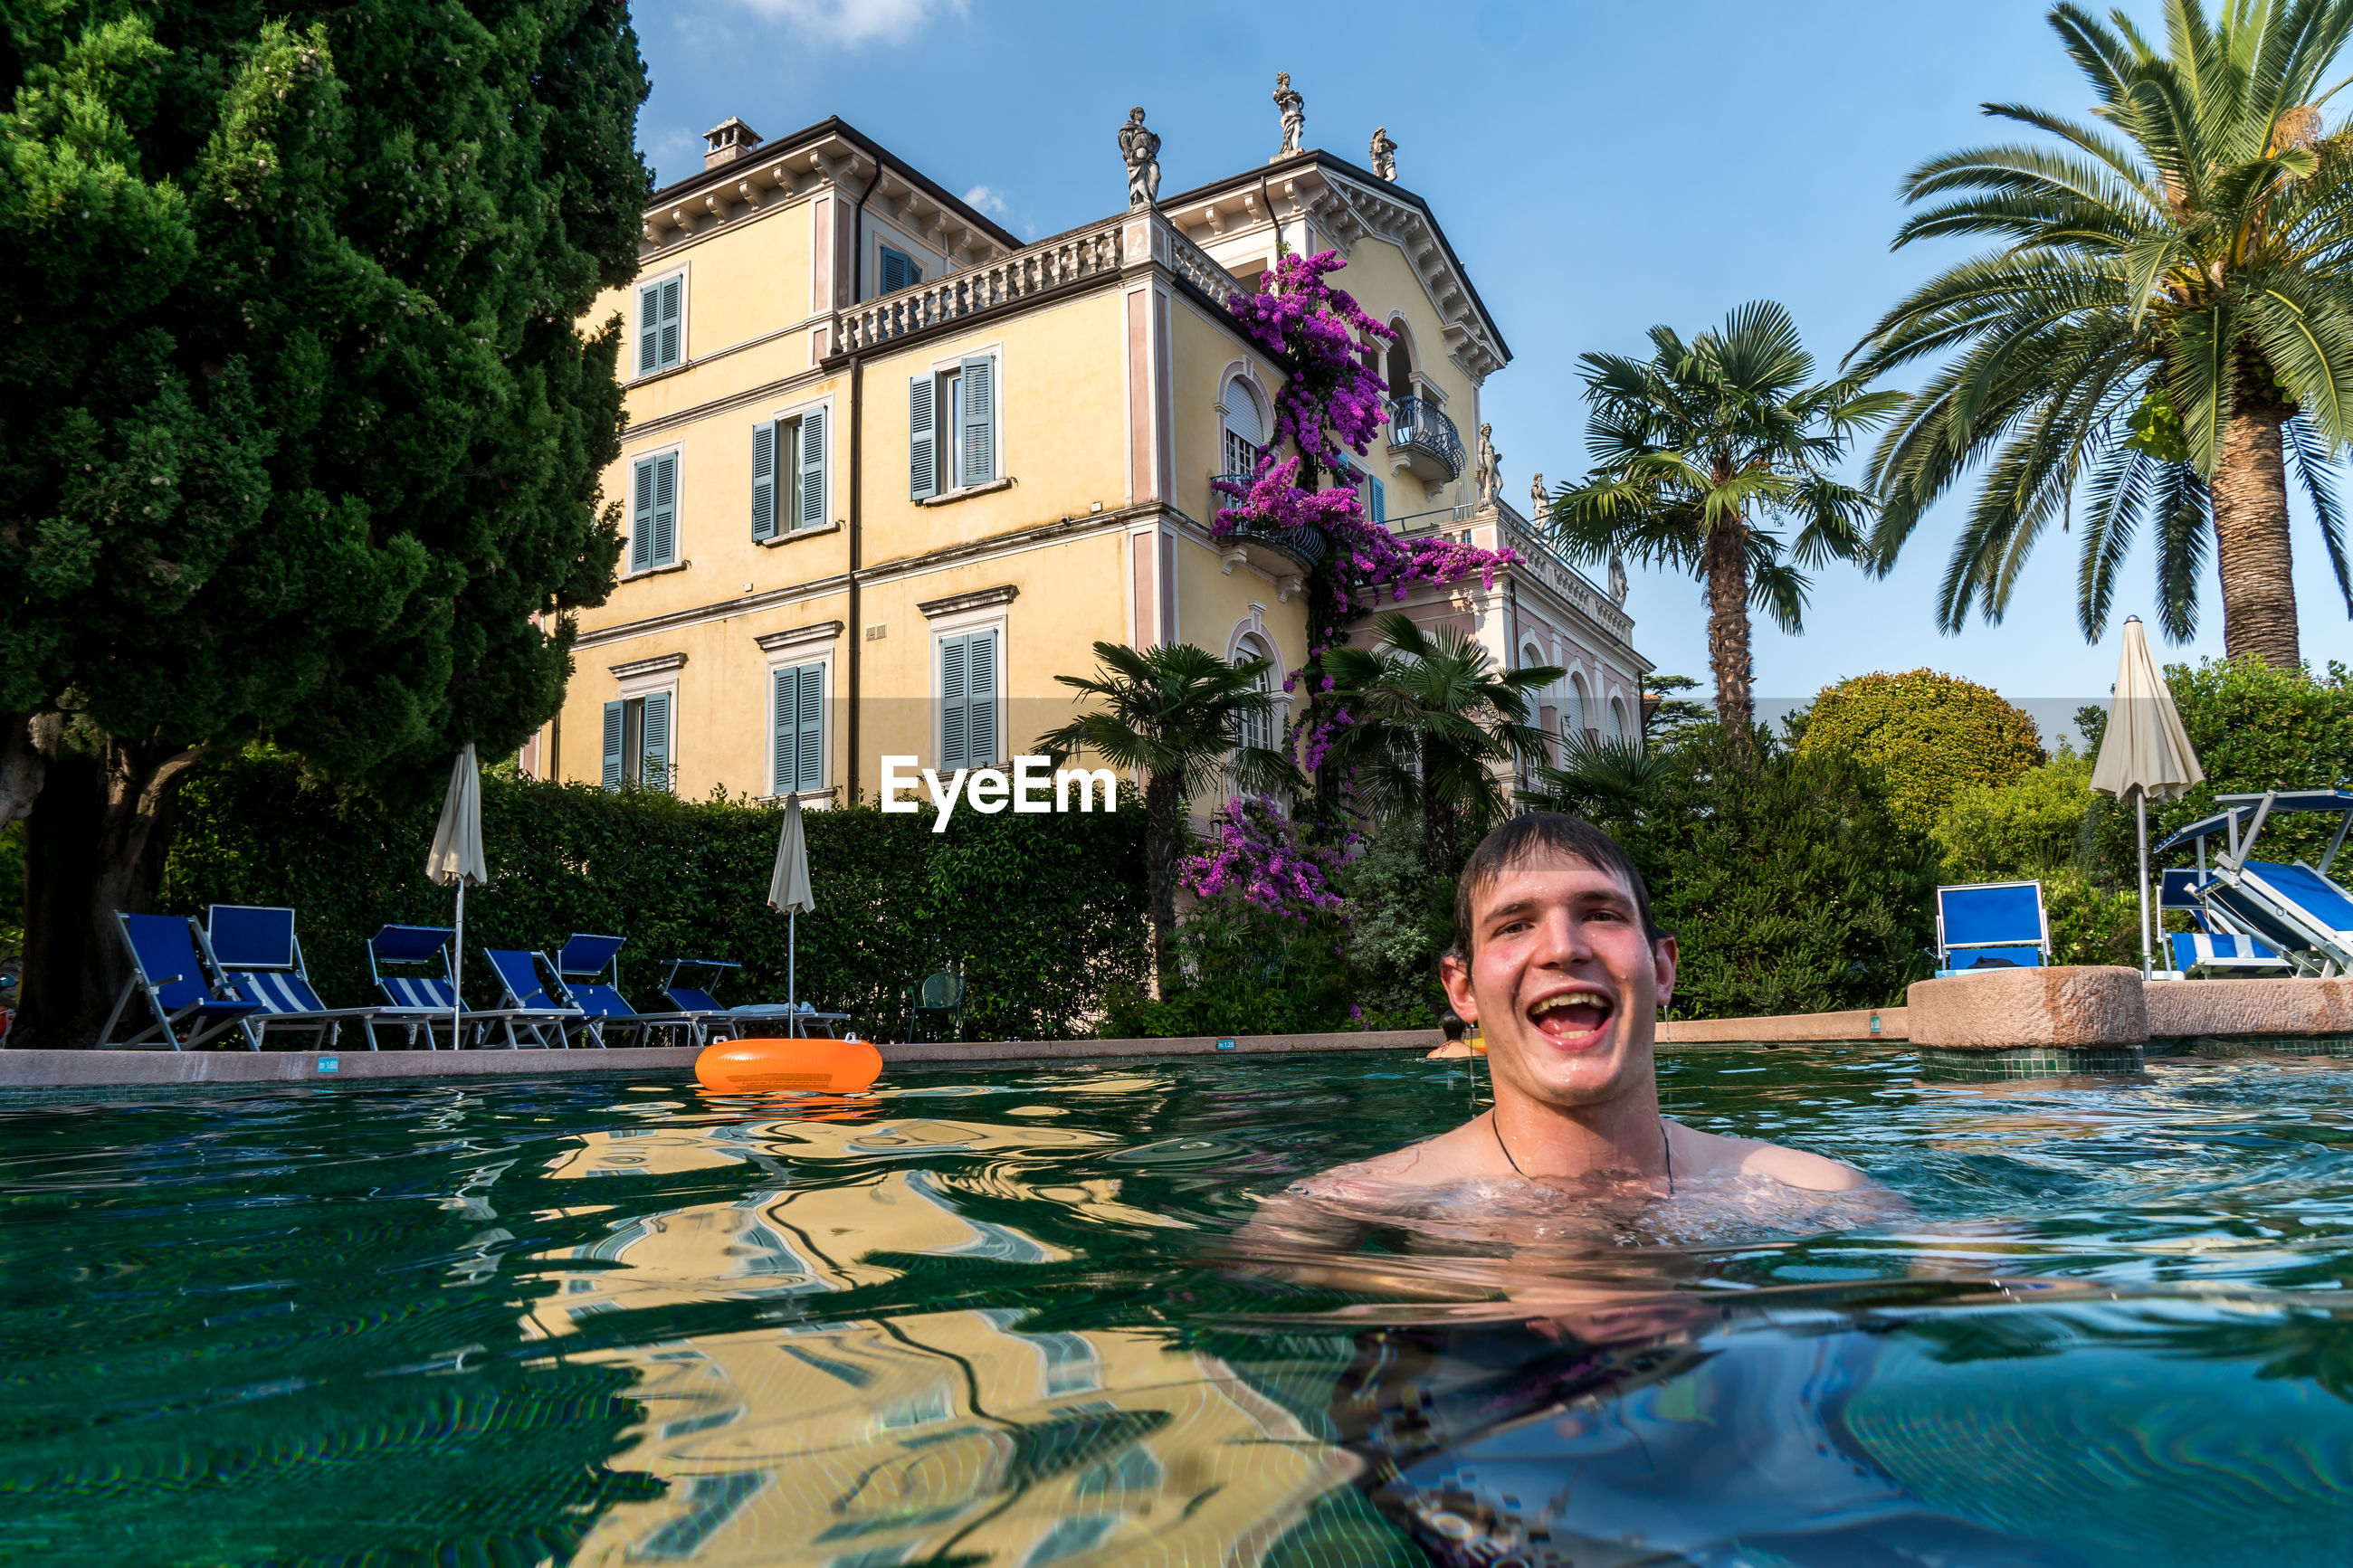 Portrait of smiling man swimming in pool against house